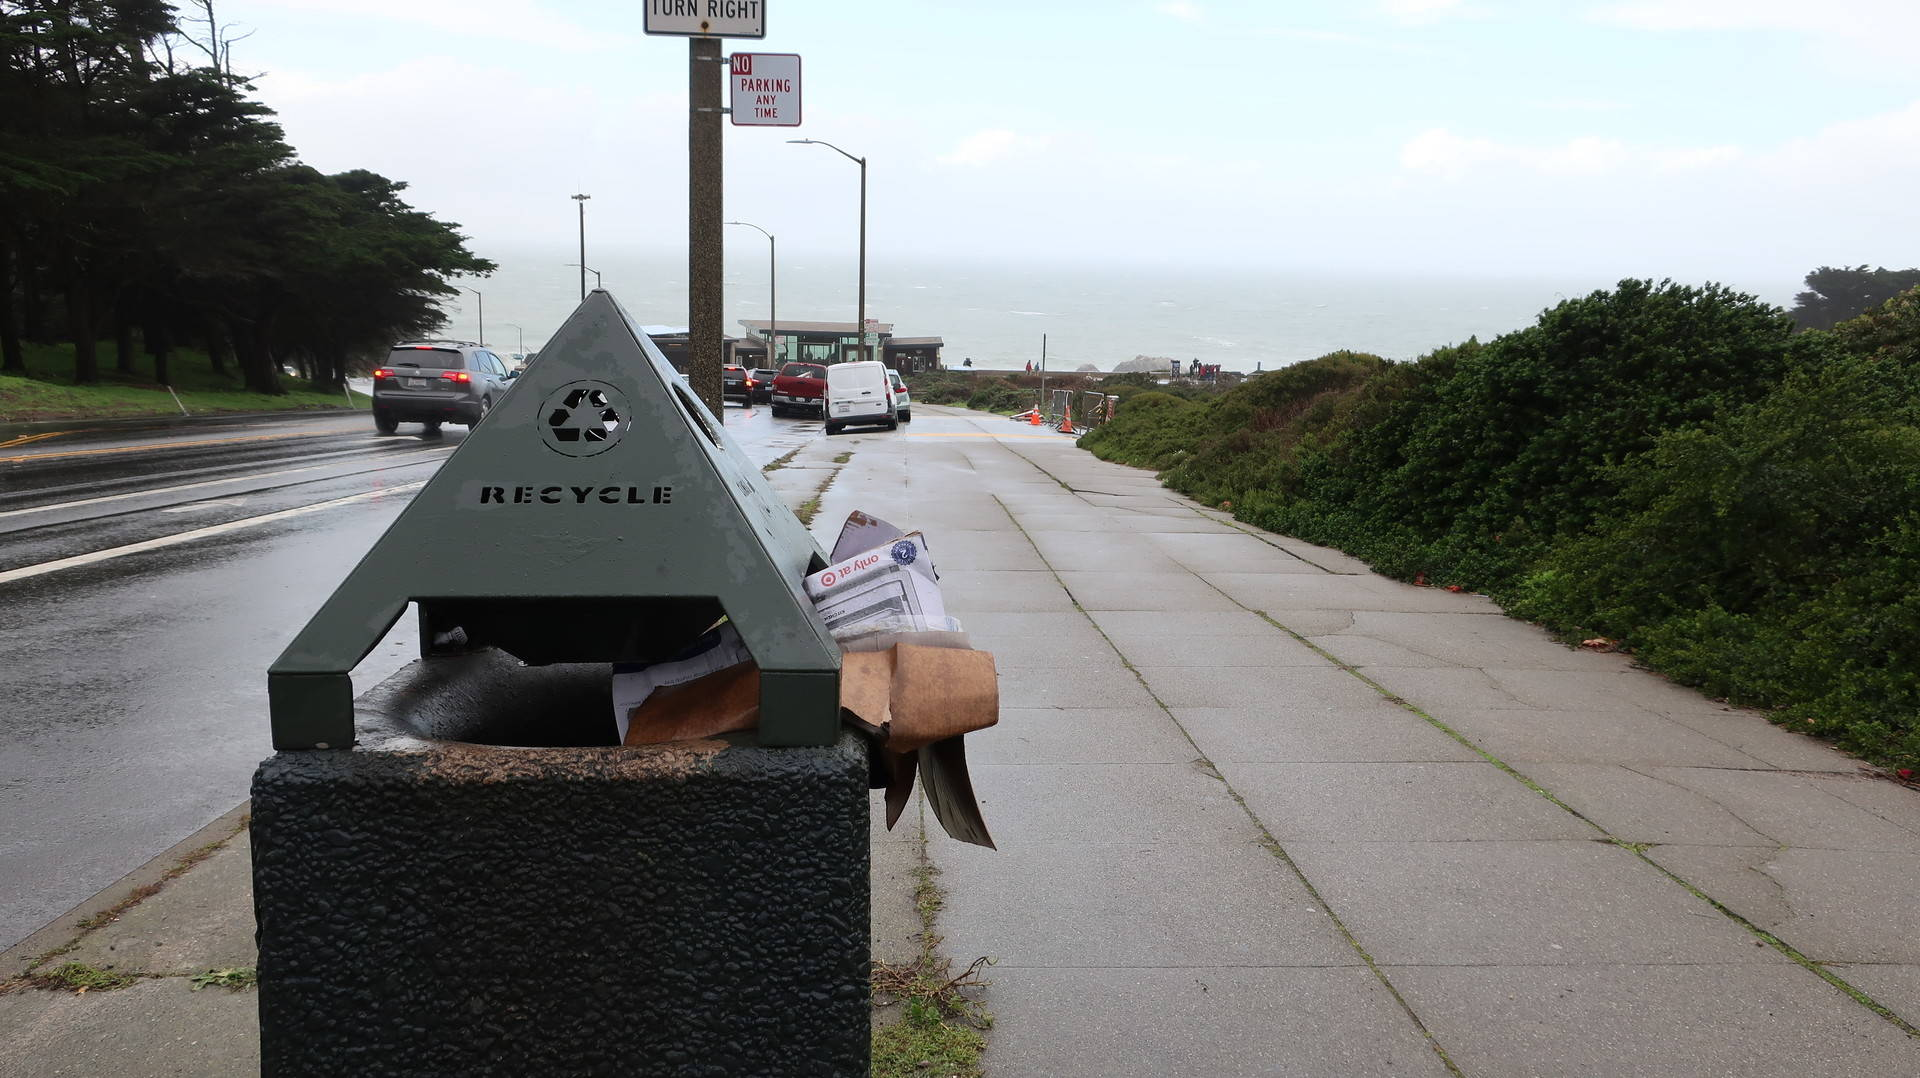 Recycling is stuffed into a bin at Lands End in San Francisco on Jan. 5, 2018. Reps. Jackie Speier and Jared Huffman gathered with volunteers to collect trash at Lands End and Ocean Beach during the government shutdown. Michelle Wiley/KQED